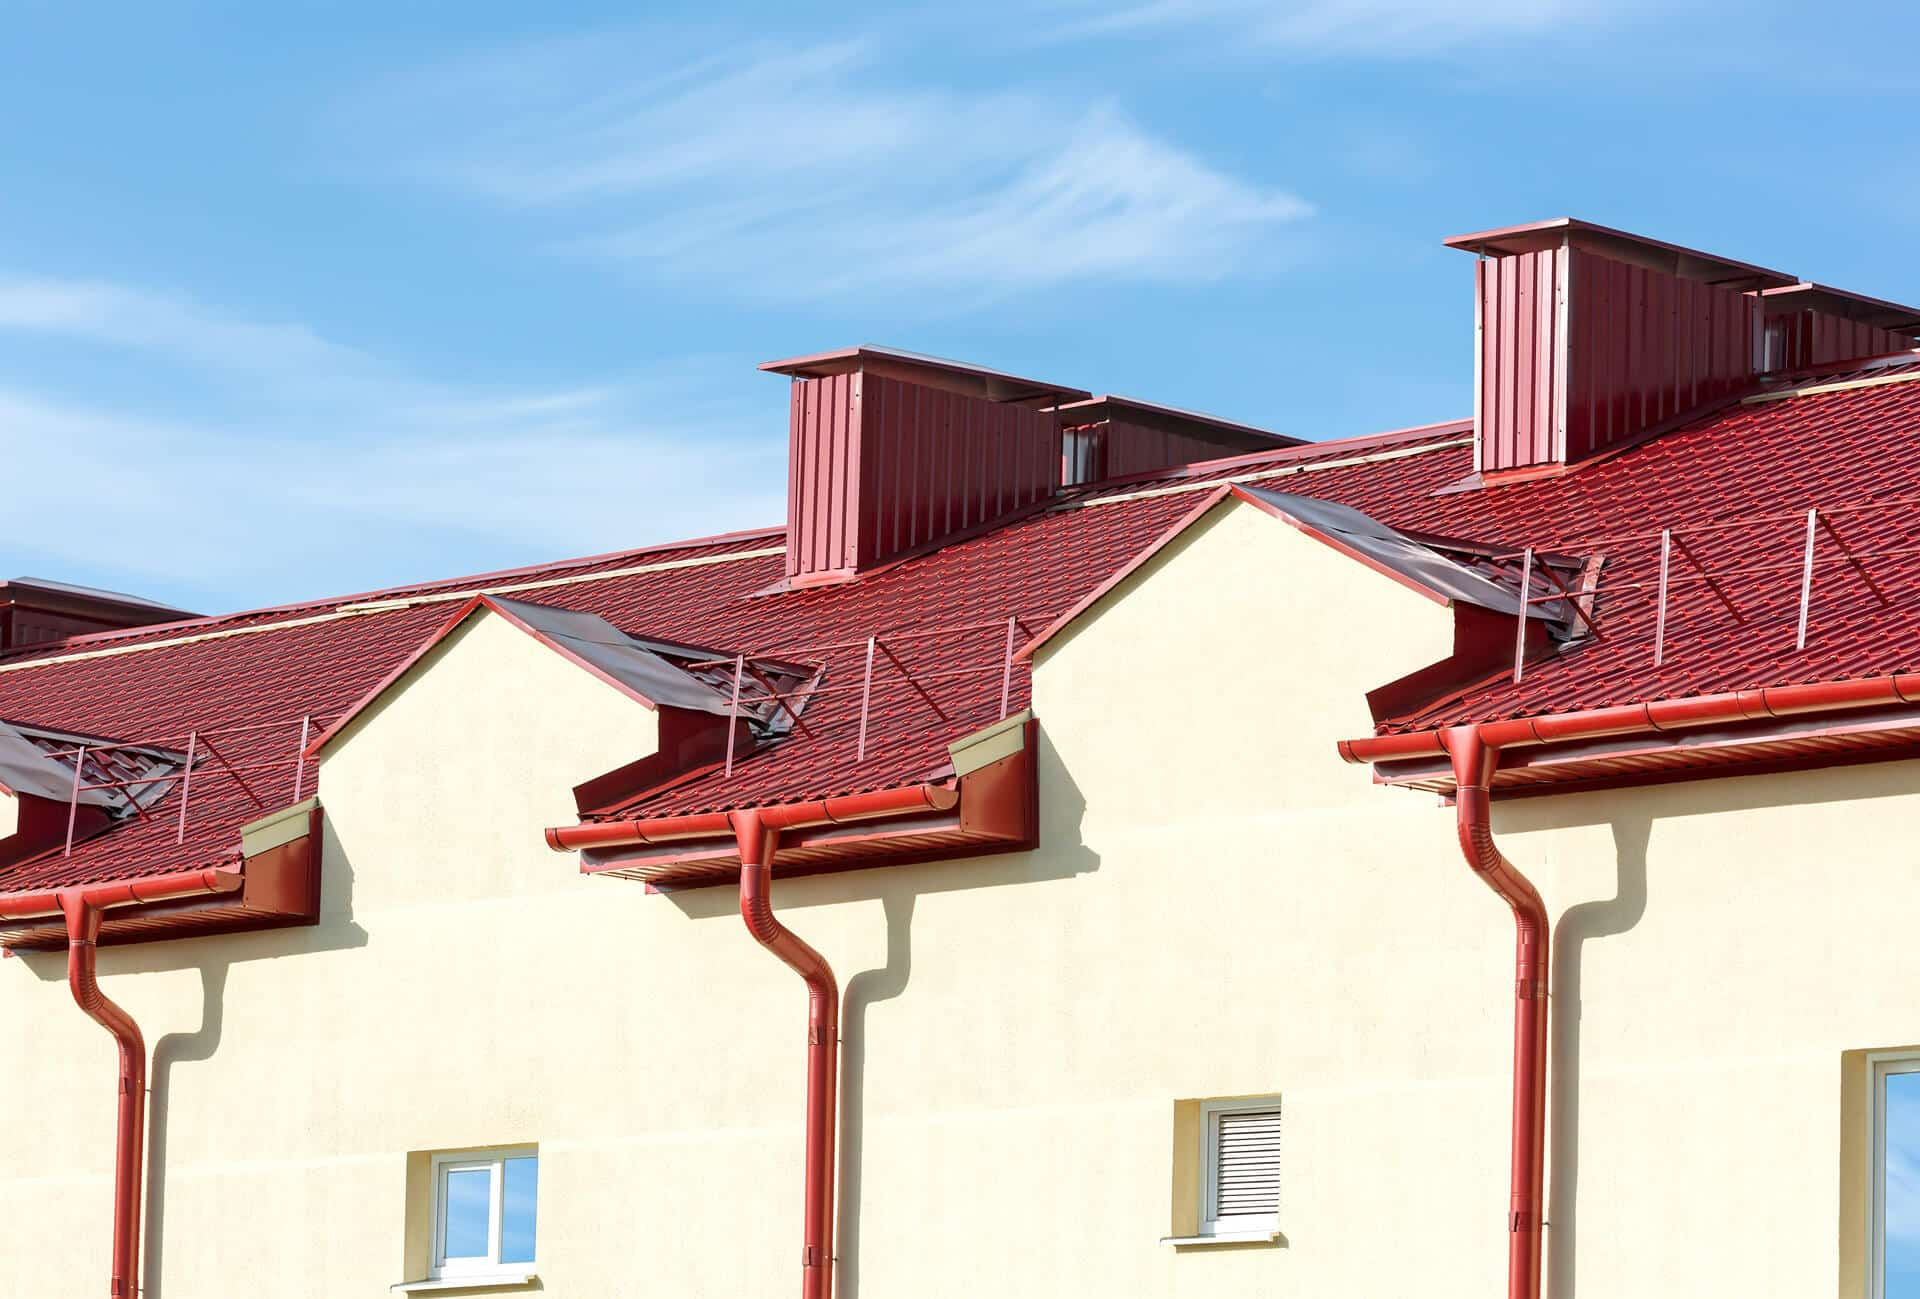 Southern California Commercial Raingutter Installation and Service